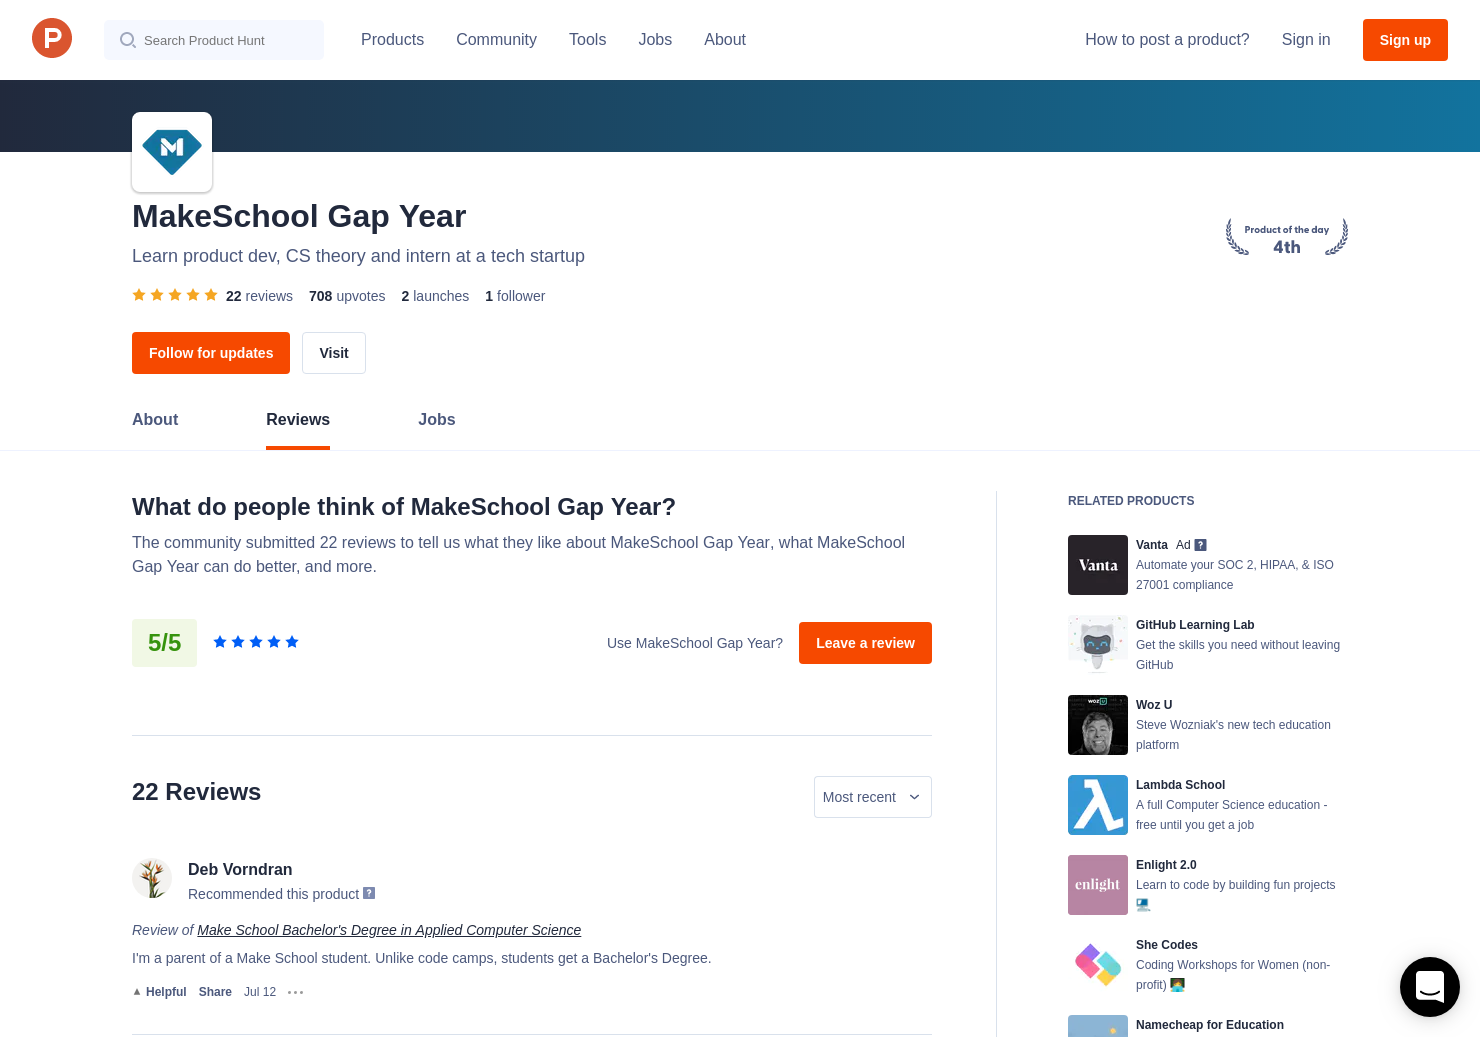 22 Make School Bachelor's Degree in Applied Computer Science